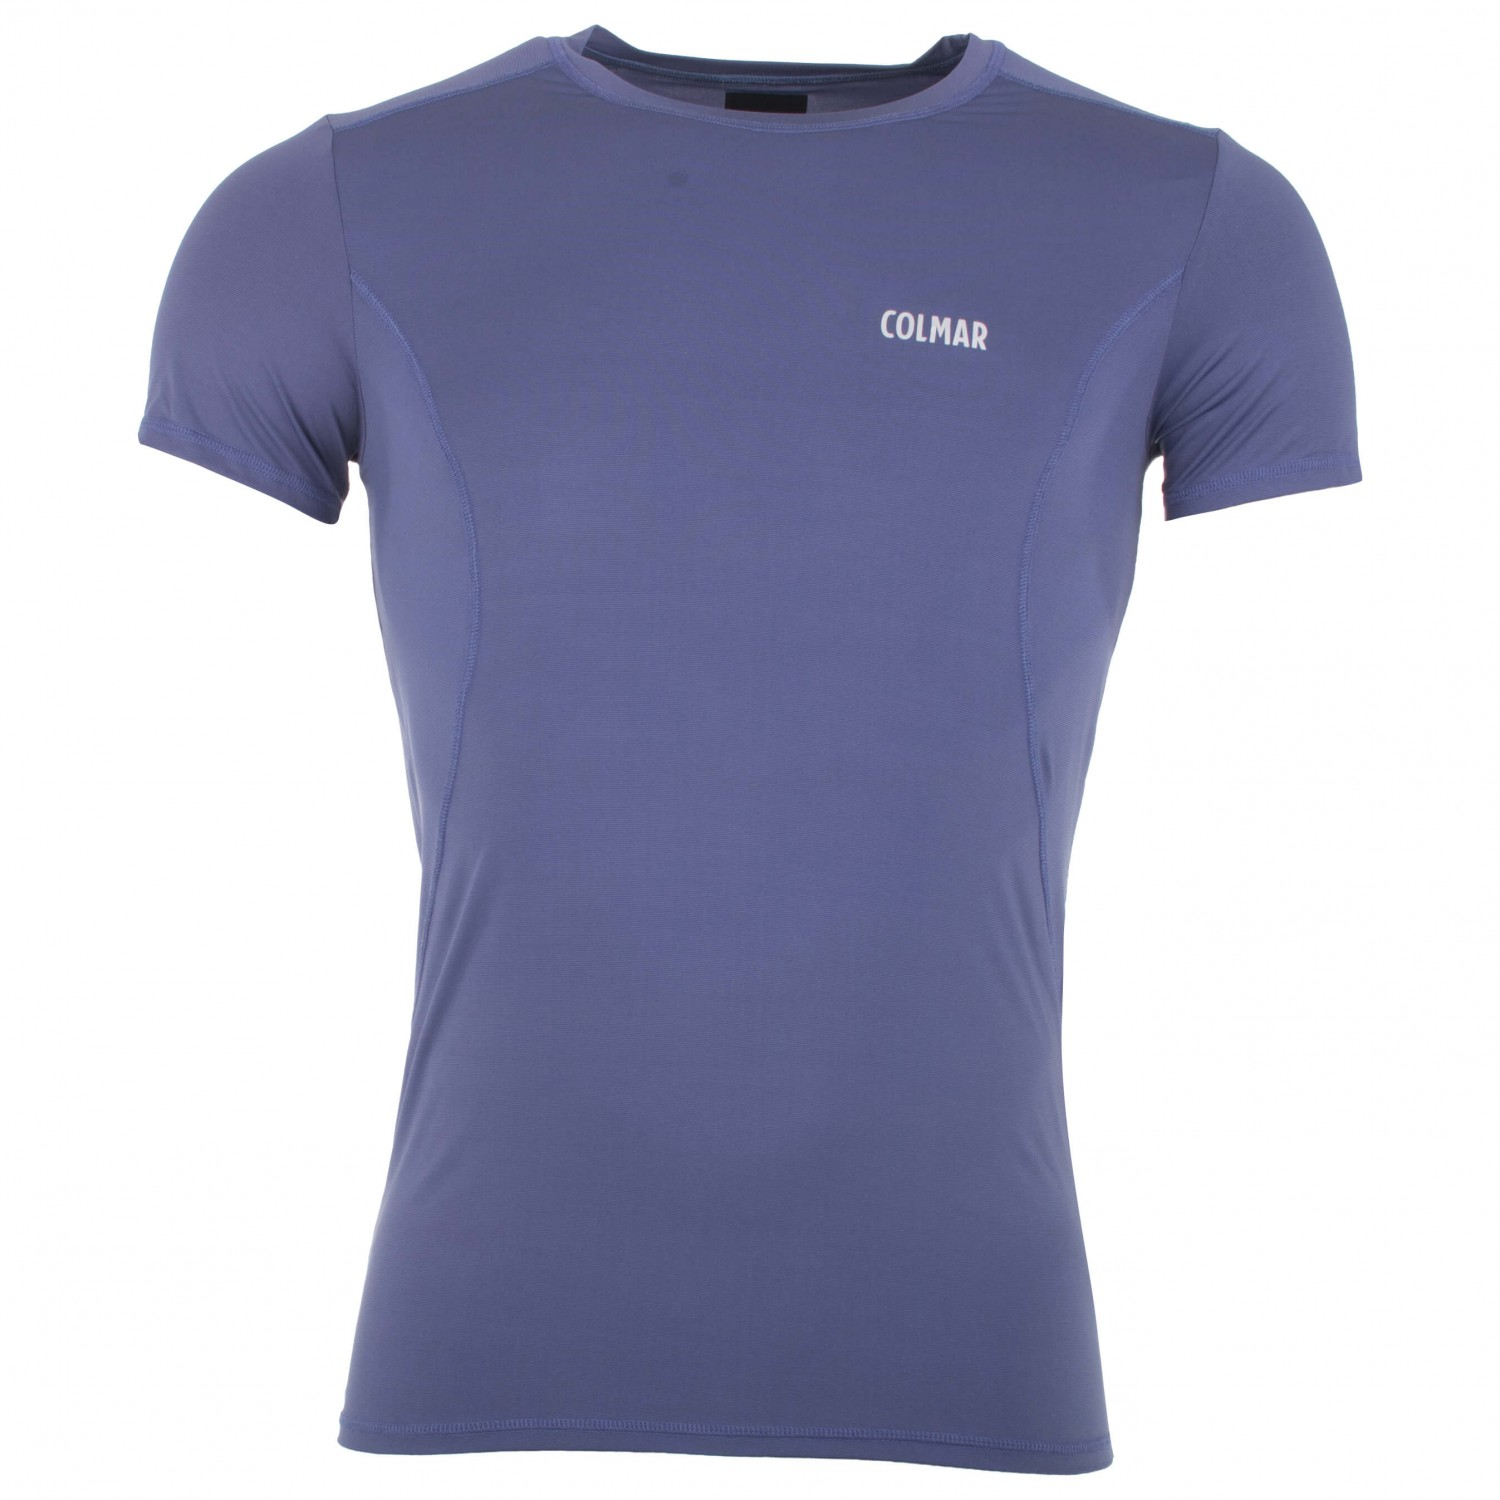 Cover your body with amazing Solid Color t-shirts from Zazzle. Search for your new favorite shirt from thousands of great designs!